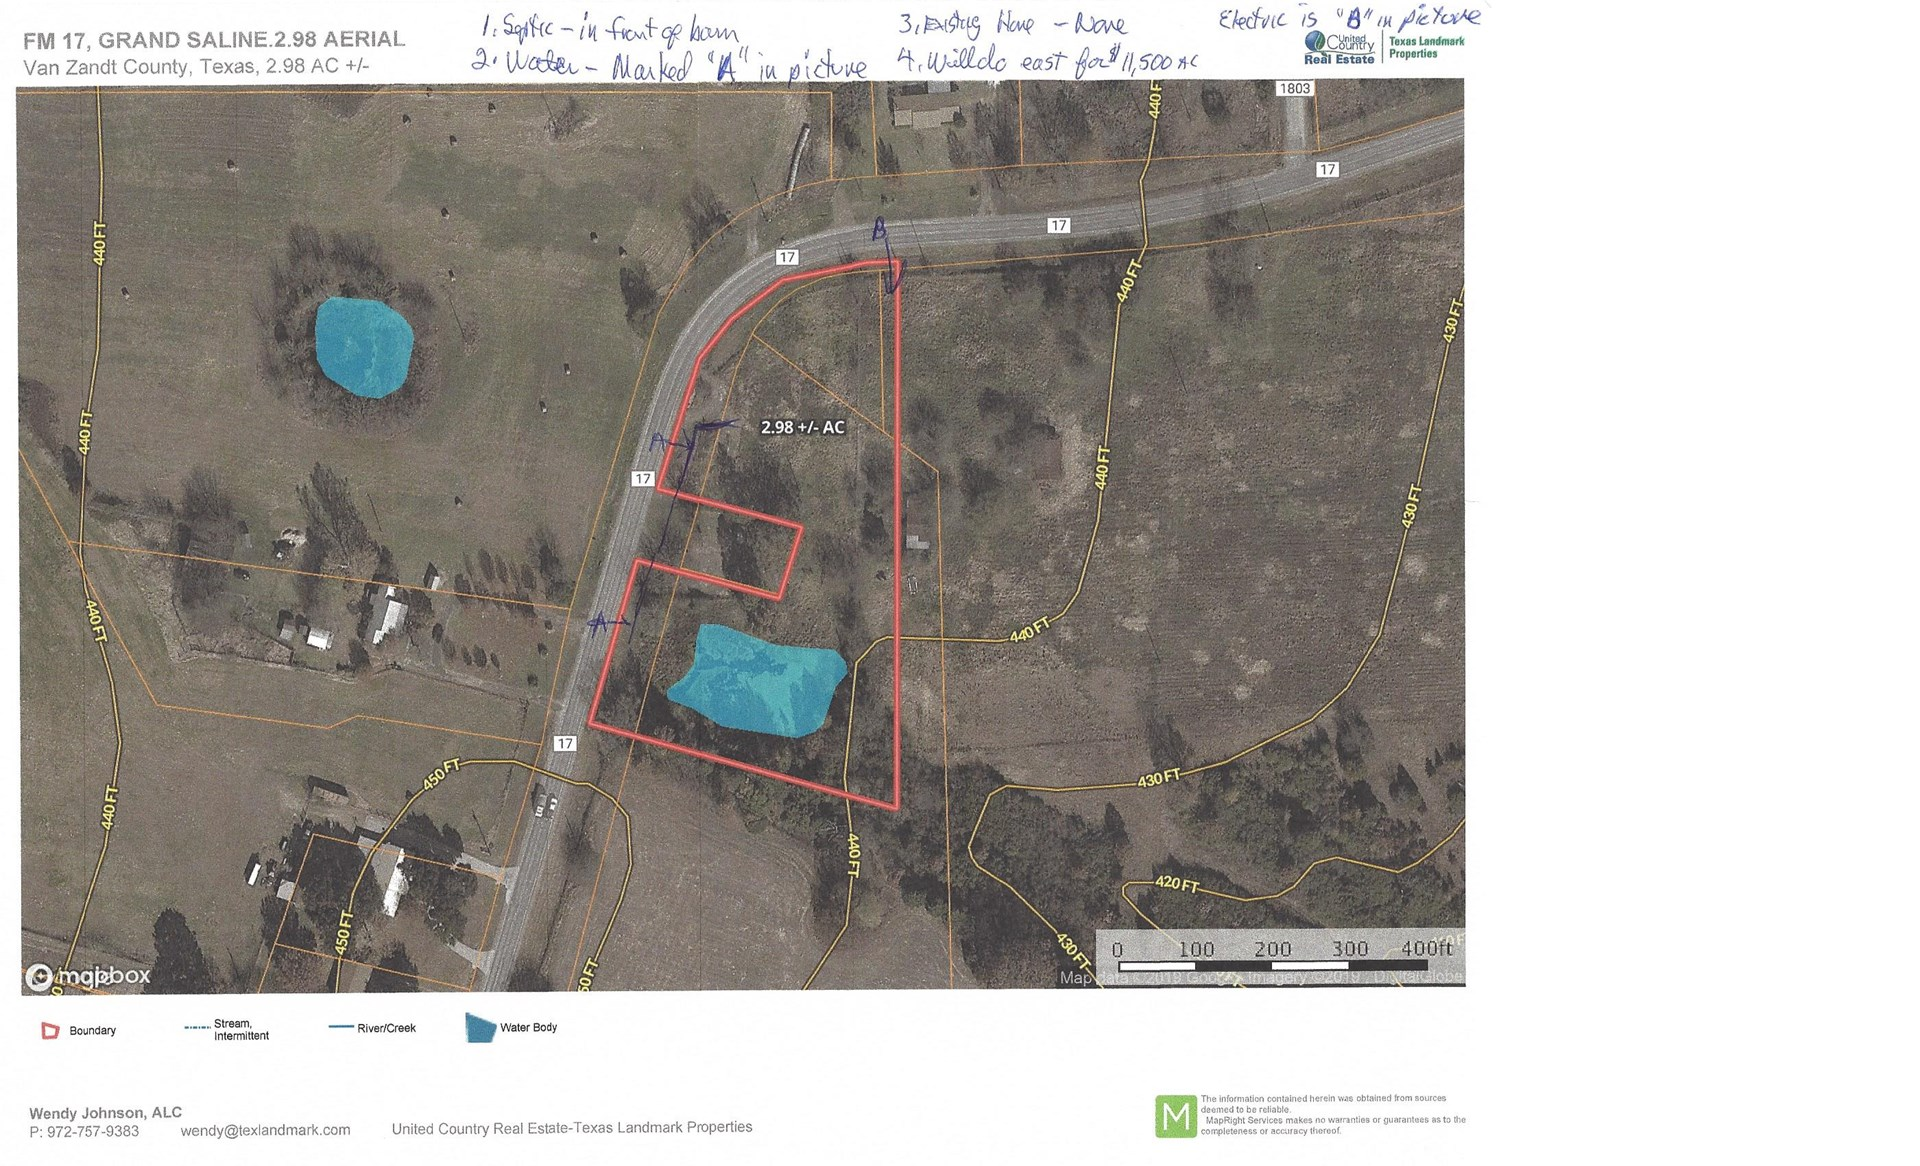 RESIDENTIAL LAND FOR SALE IN GRAND SALINE, TEXAS